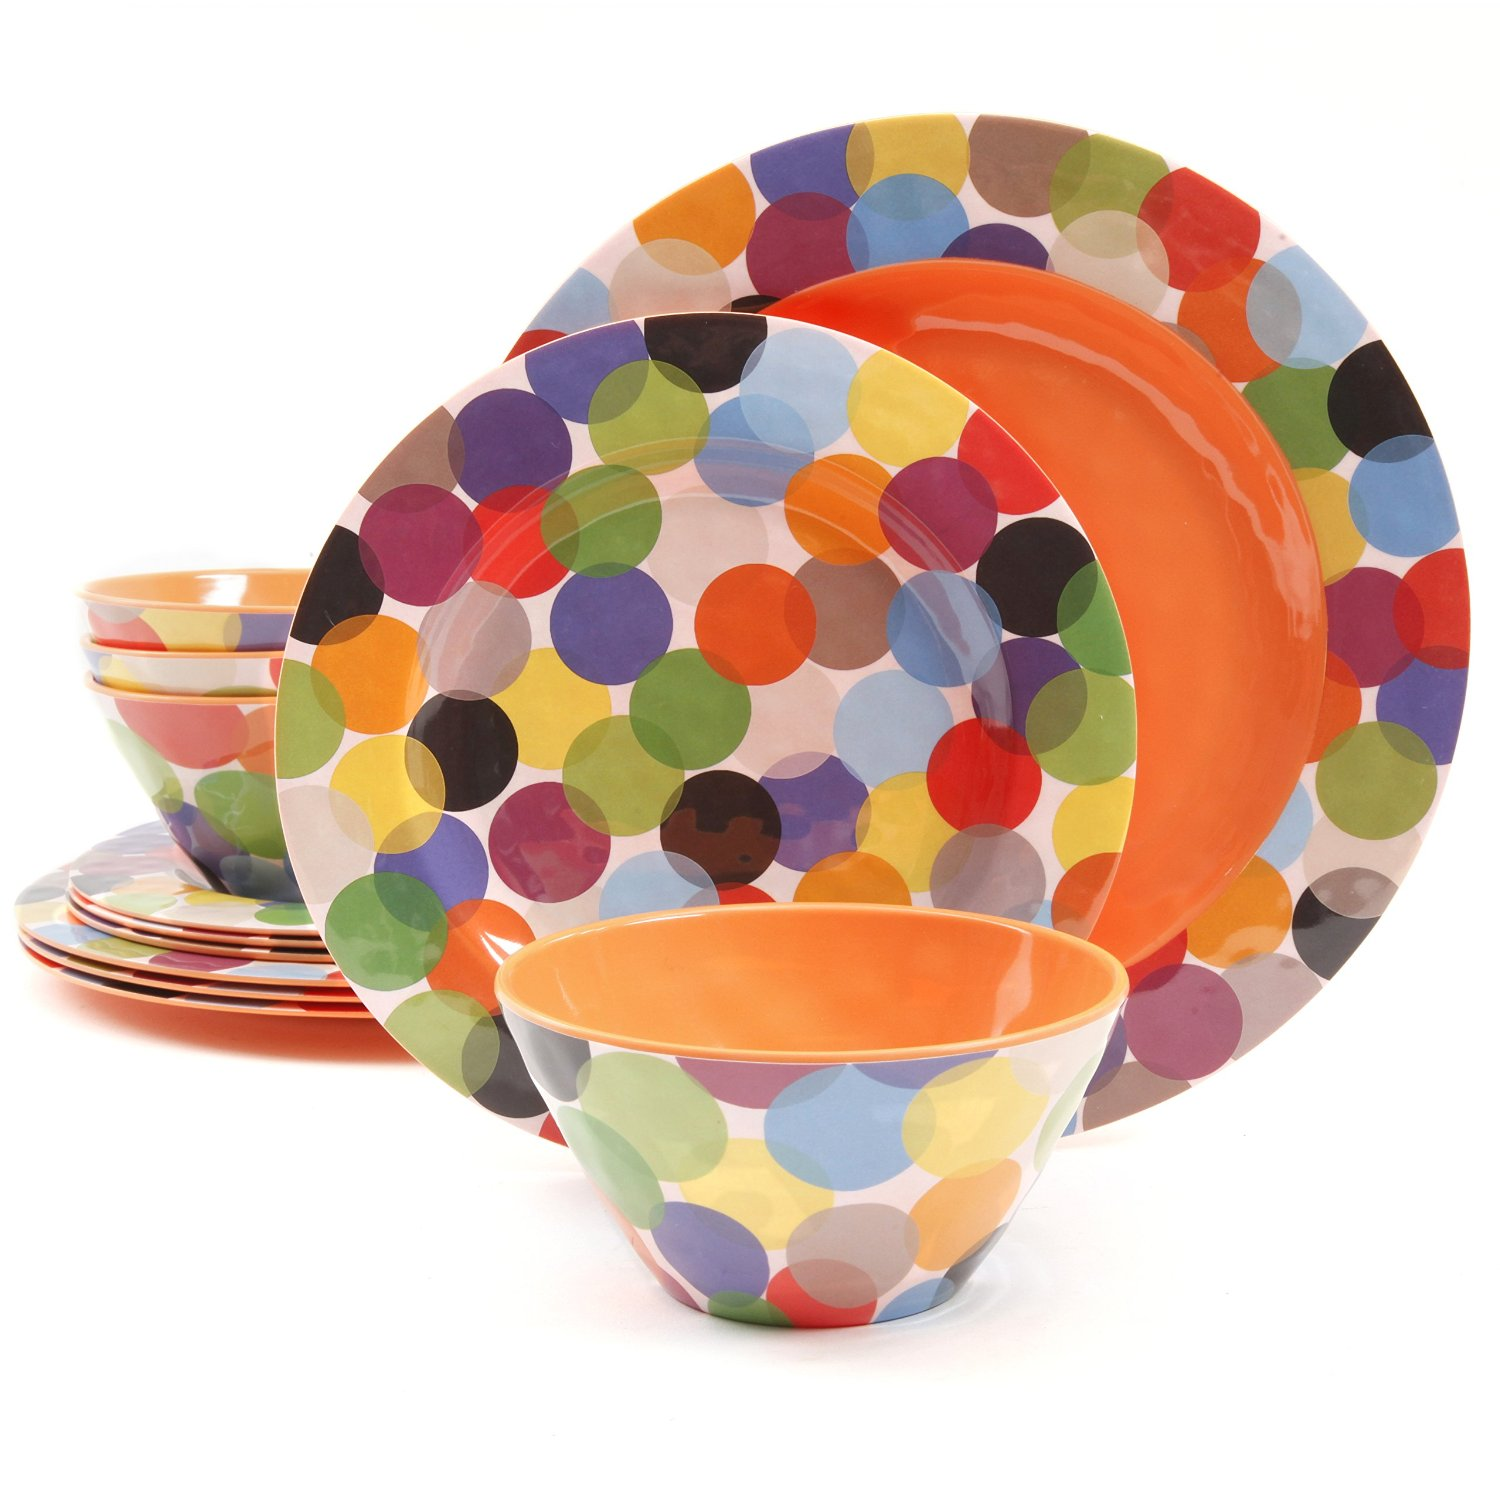 Melamine Dinnerware Sets  sc 1 st  Simply Beautiful Kitchens & Are Melamine Dinnerware Sets Unbreakable?